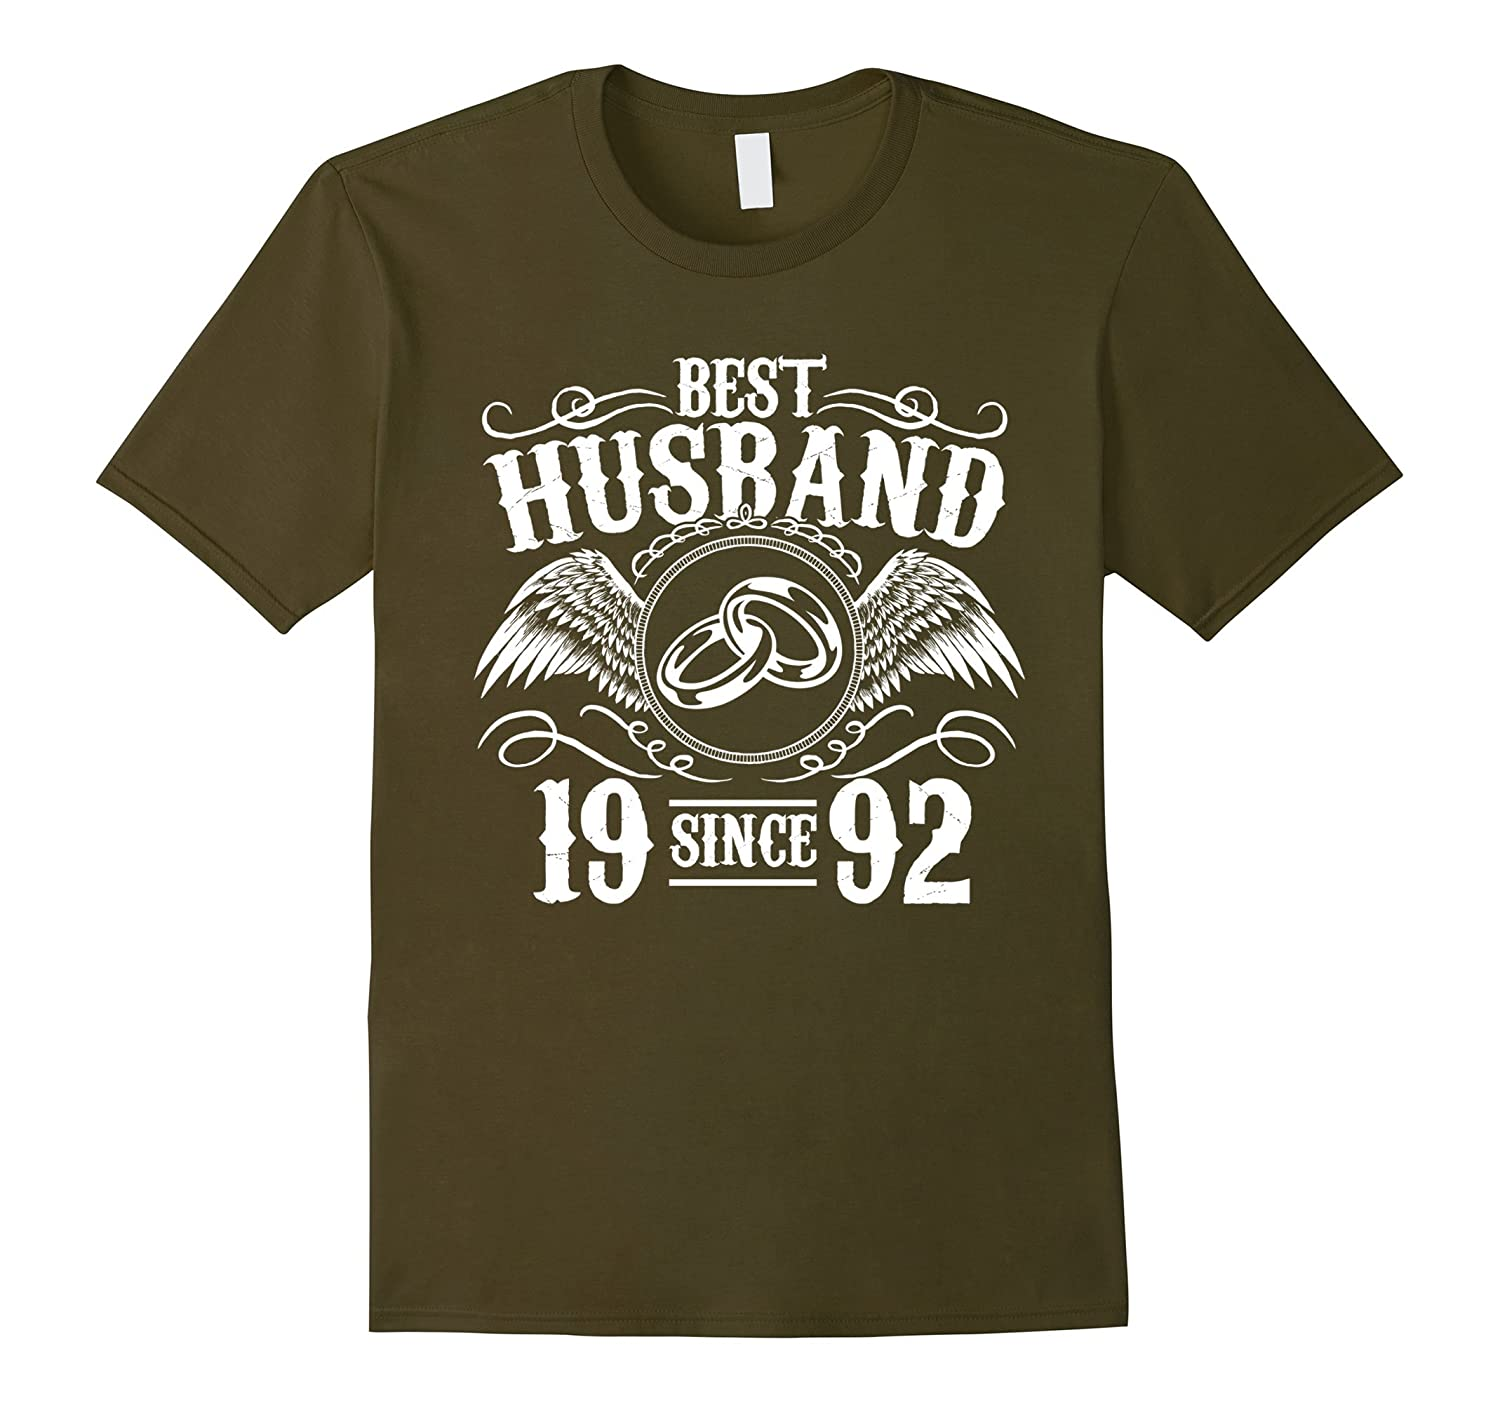 Great T-Shirt For Husband. 25th Wedding Anniversary Gift